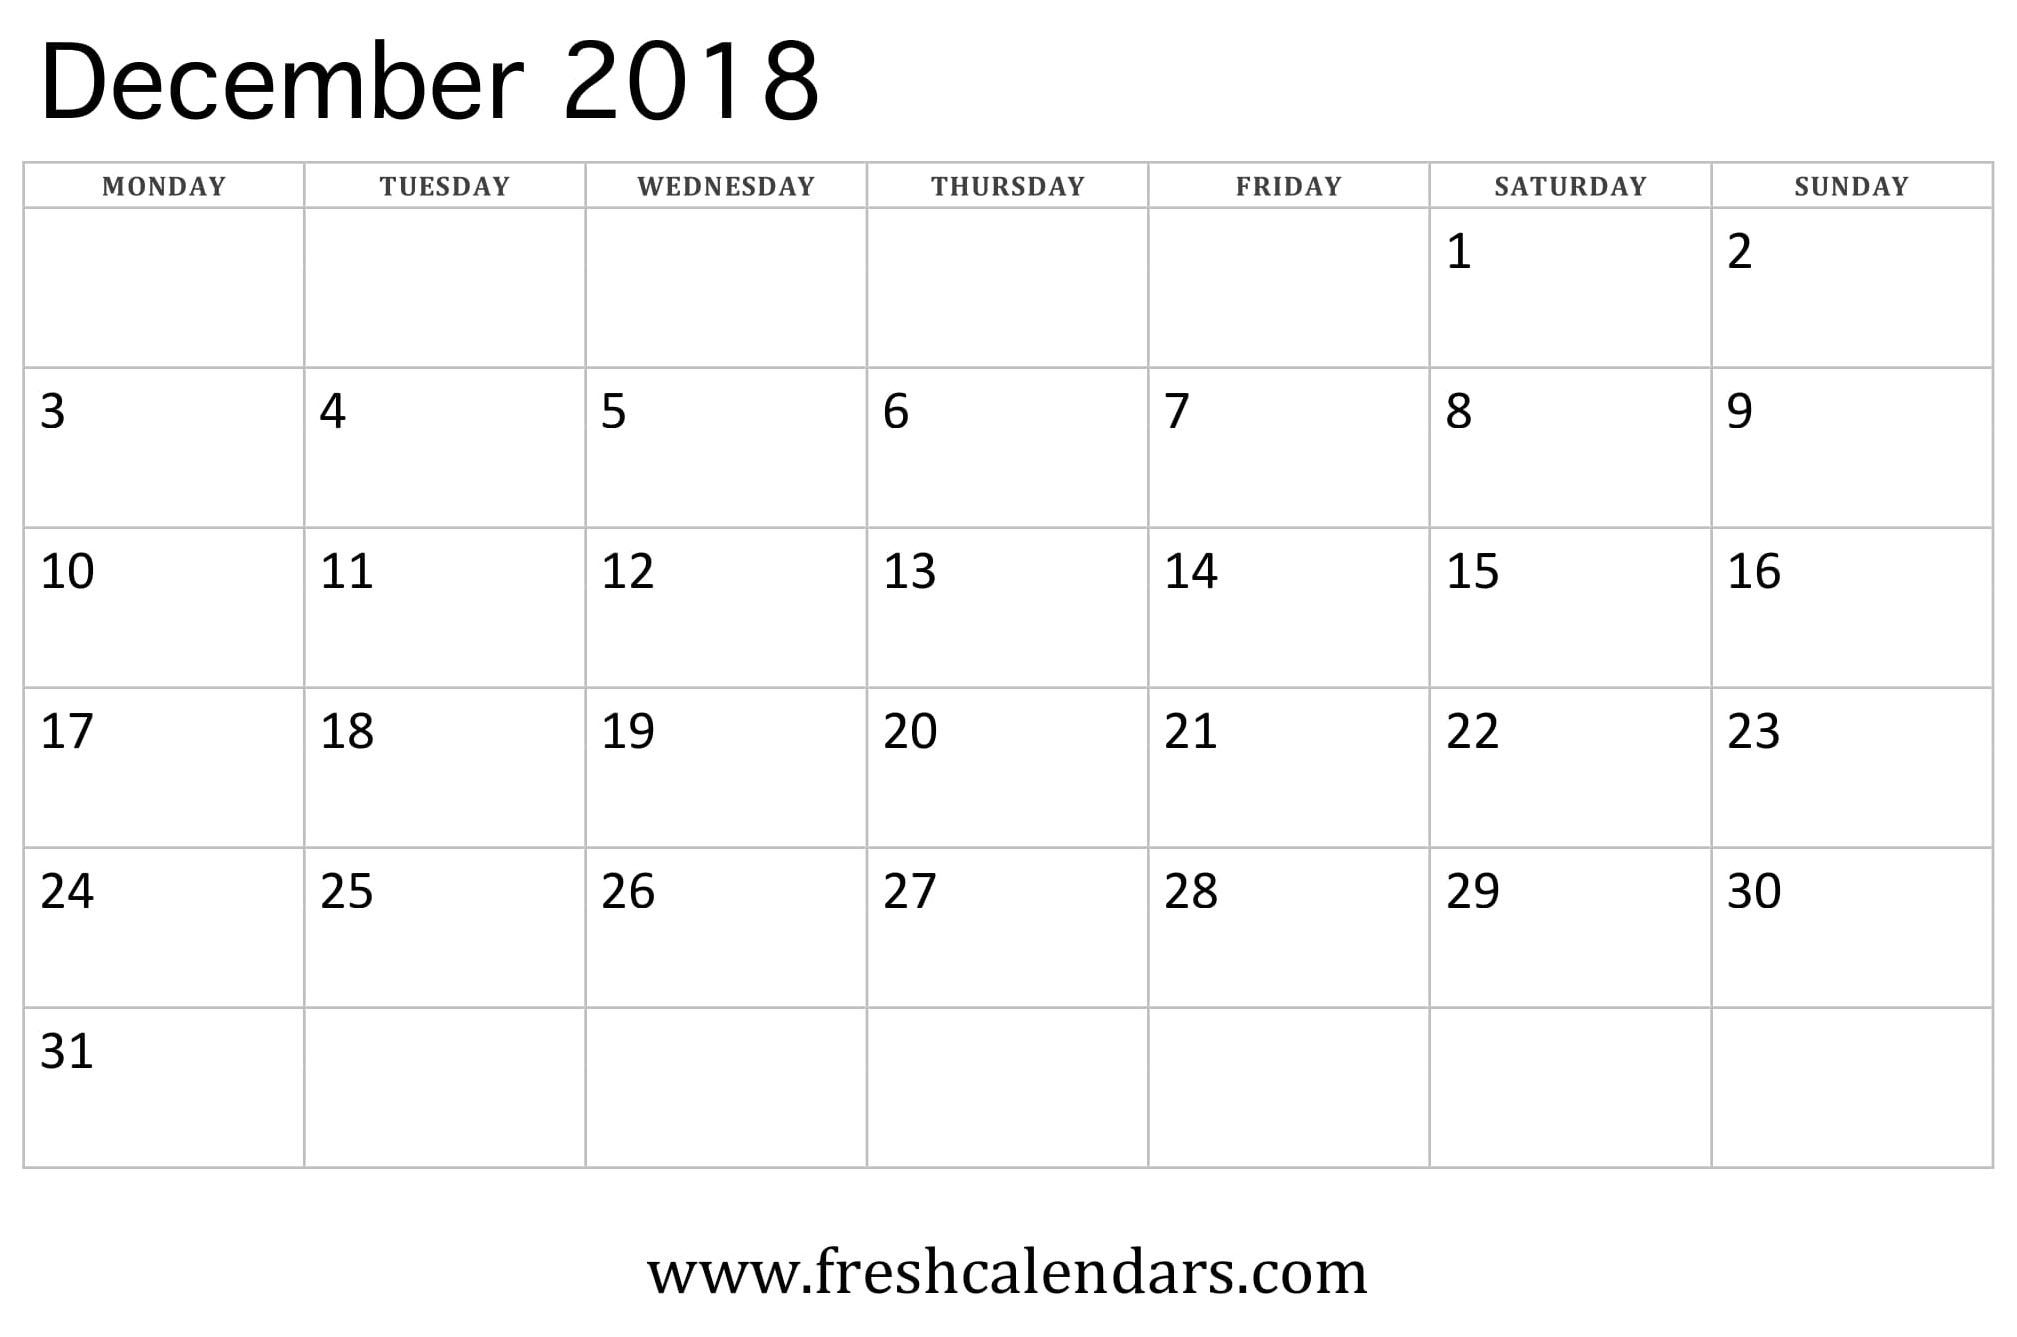 december 2018 calendar week starts on monday